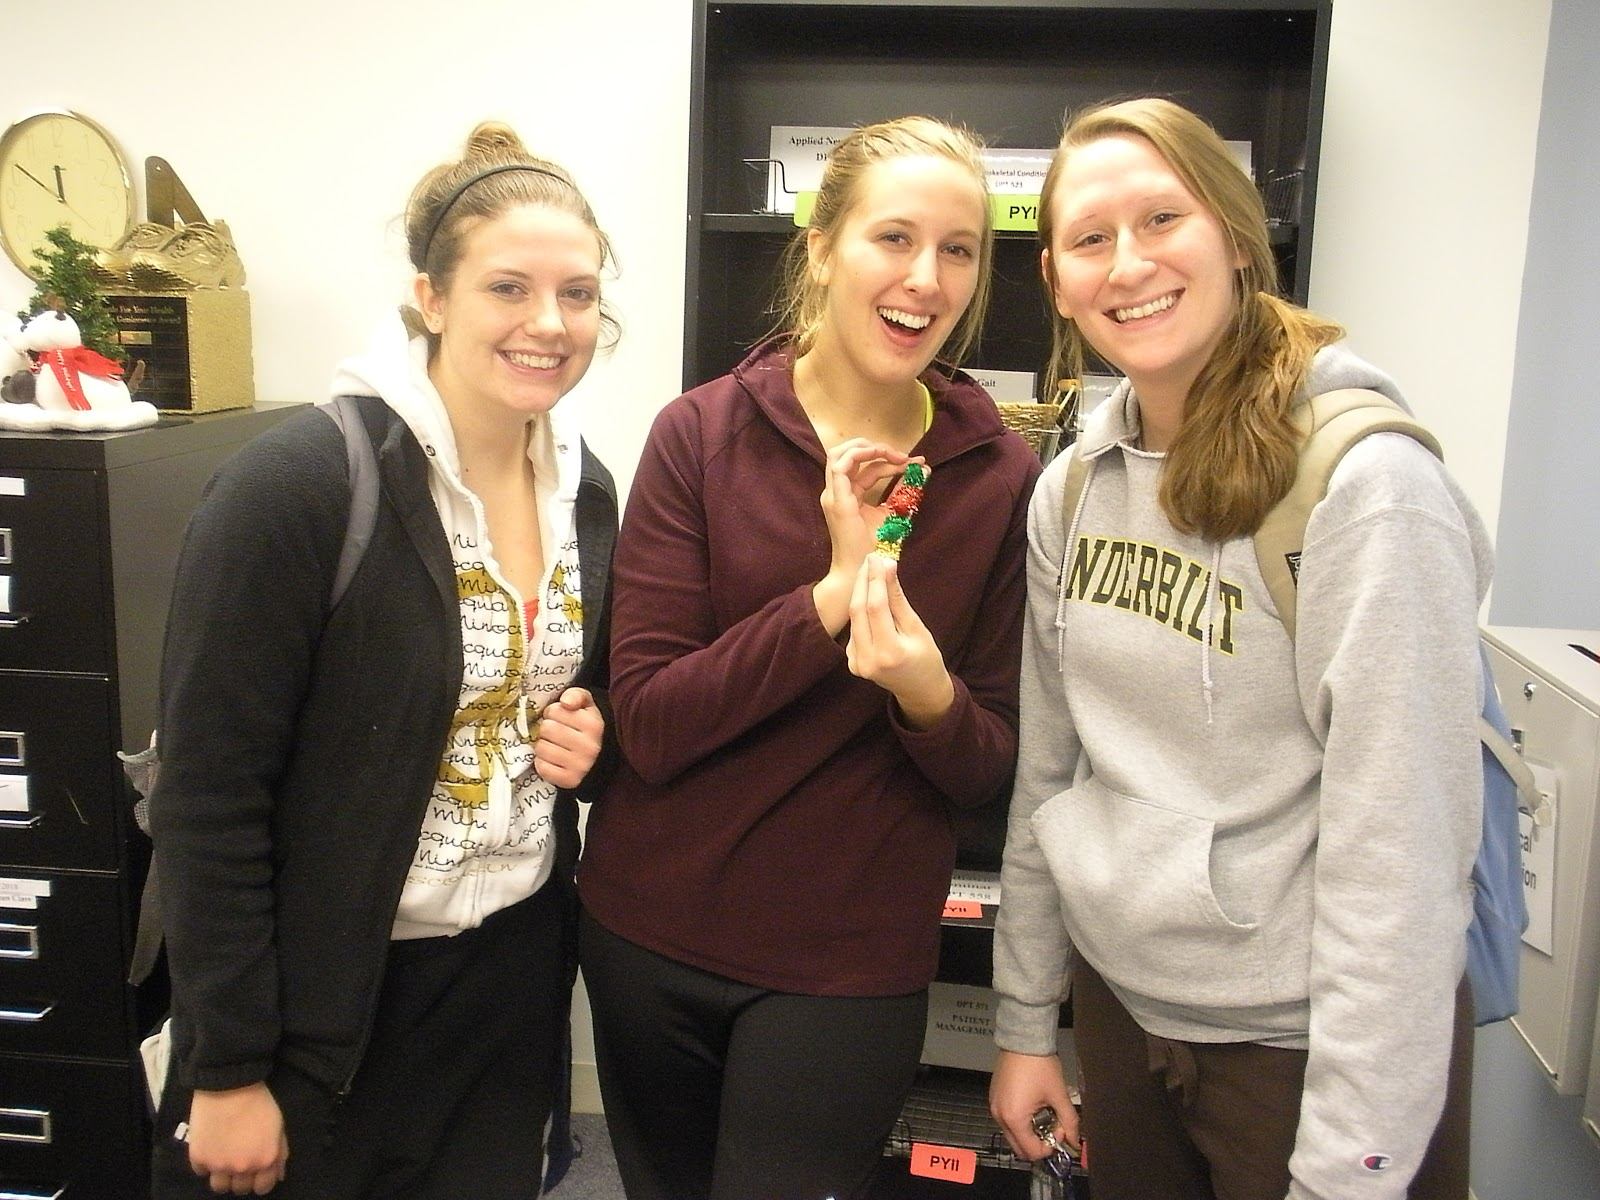 College hunter physical therapy - Pt Students Kristen Guzak Maggie Null And Vicky Cichocki Class Of 2015 Making Ornaments